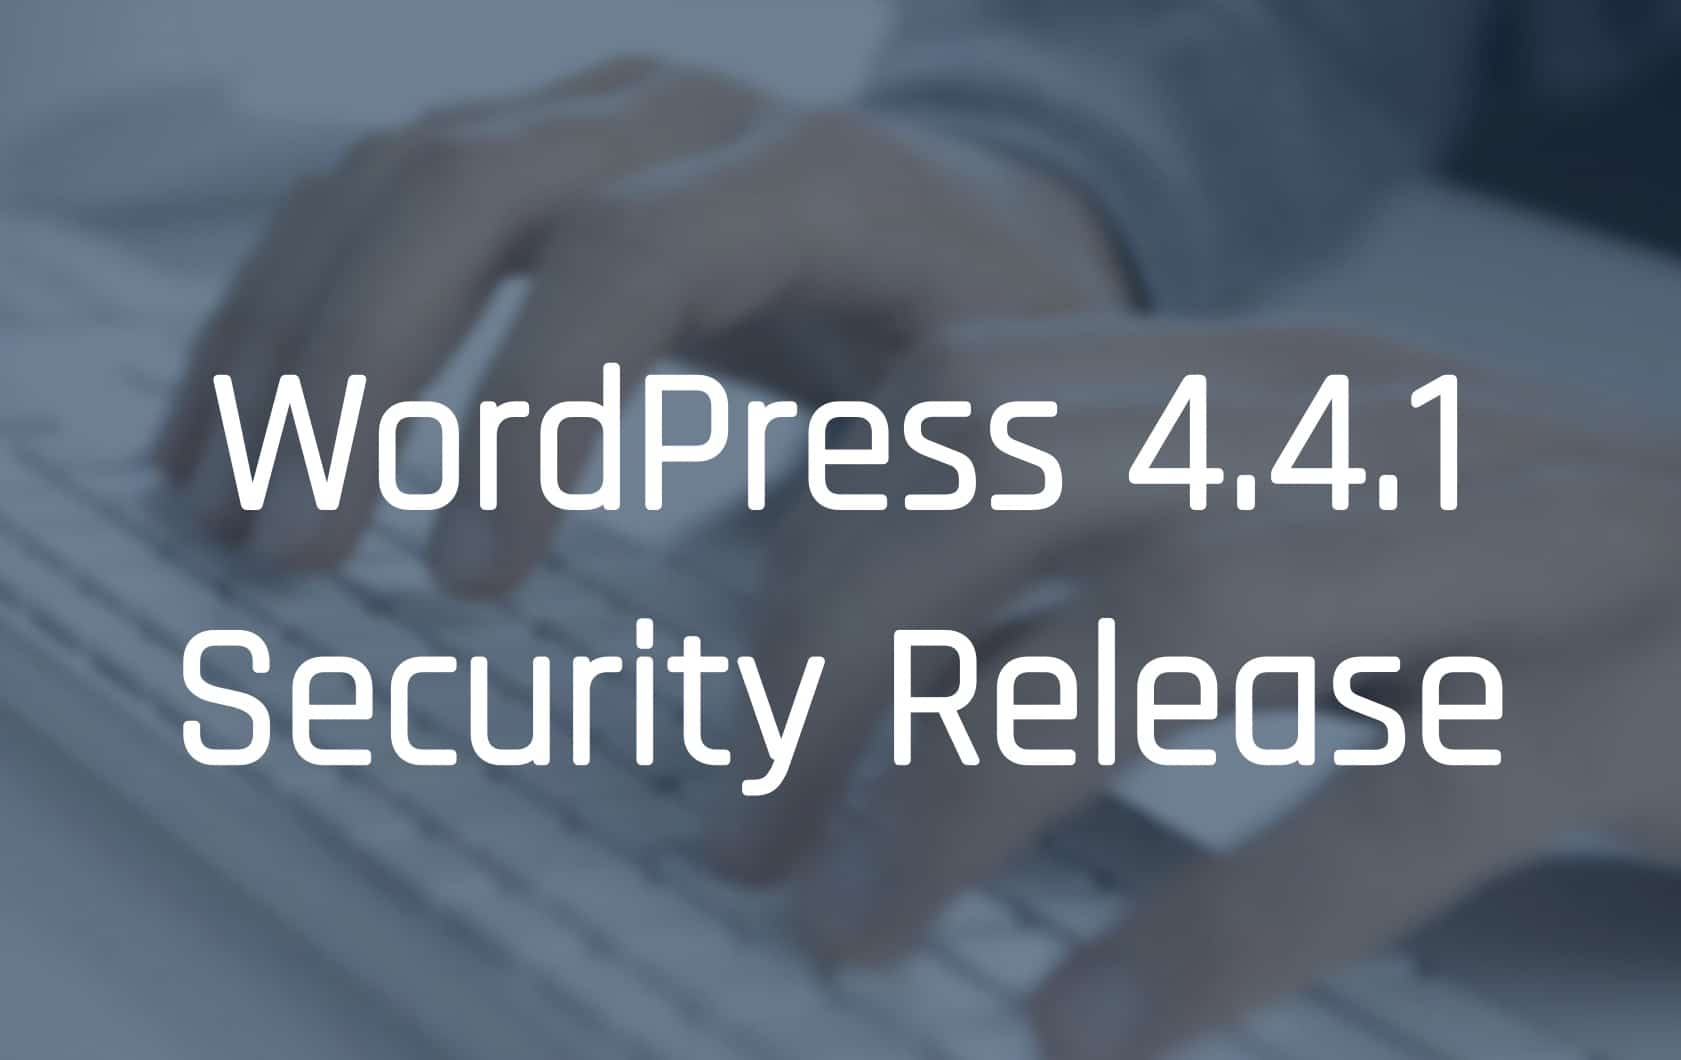 WordPress 4.4.1